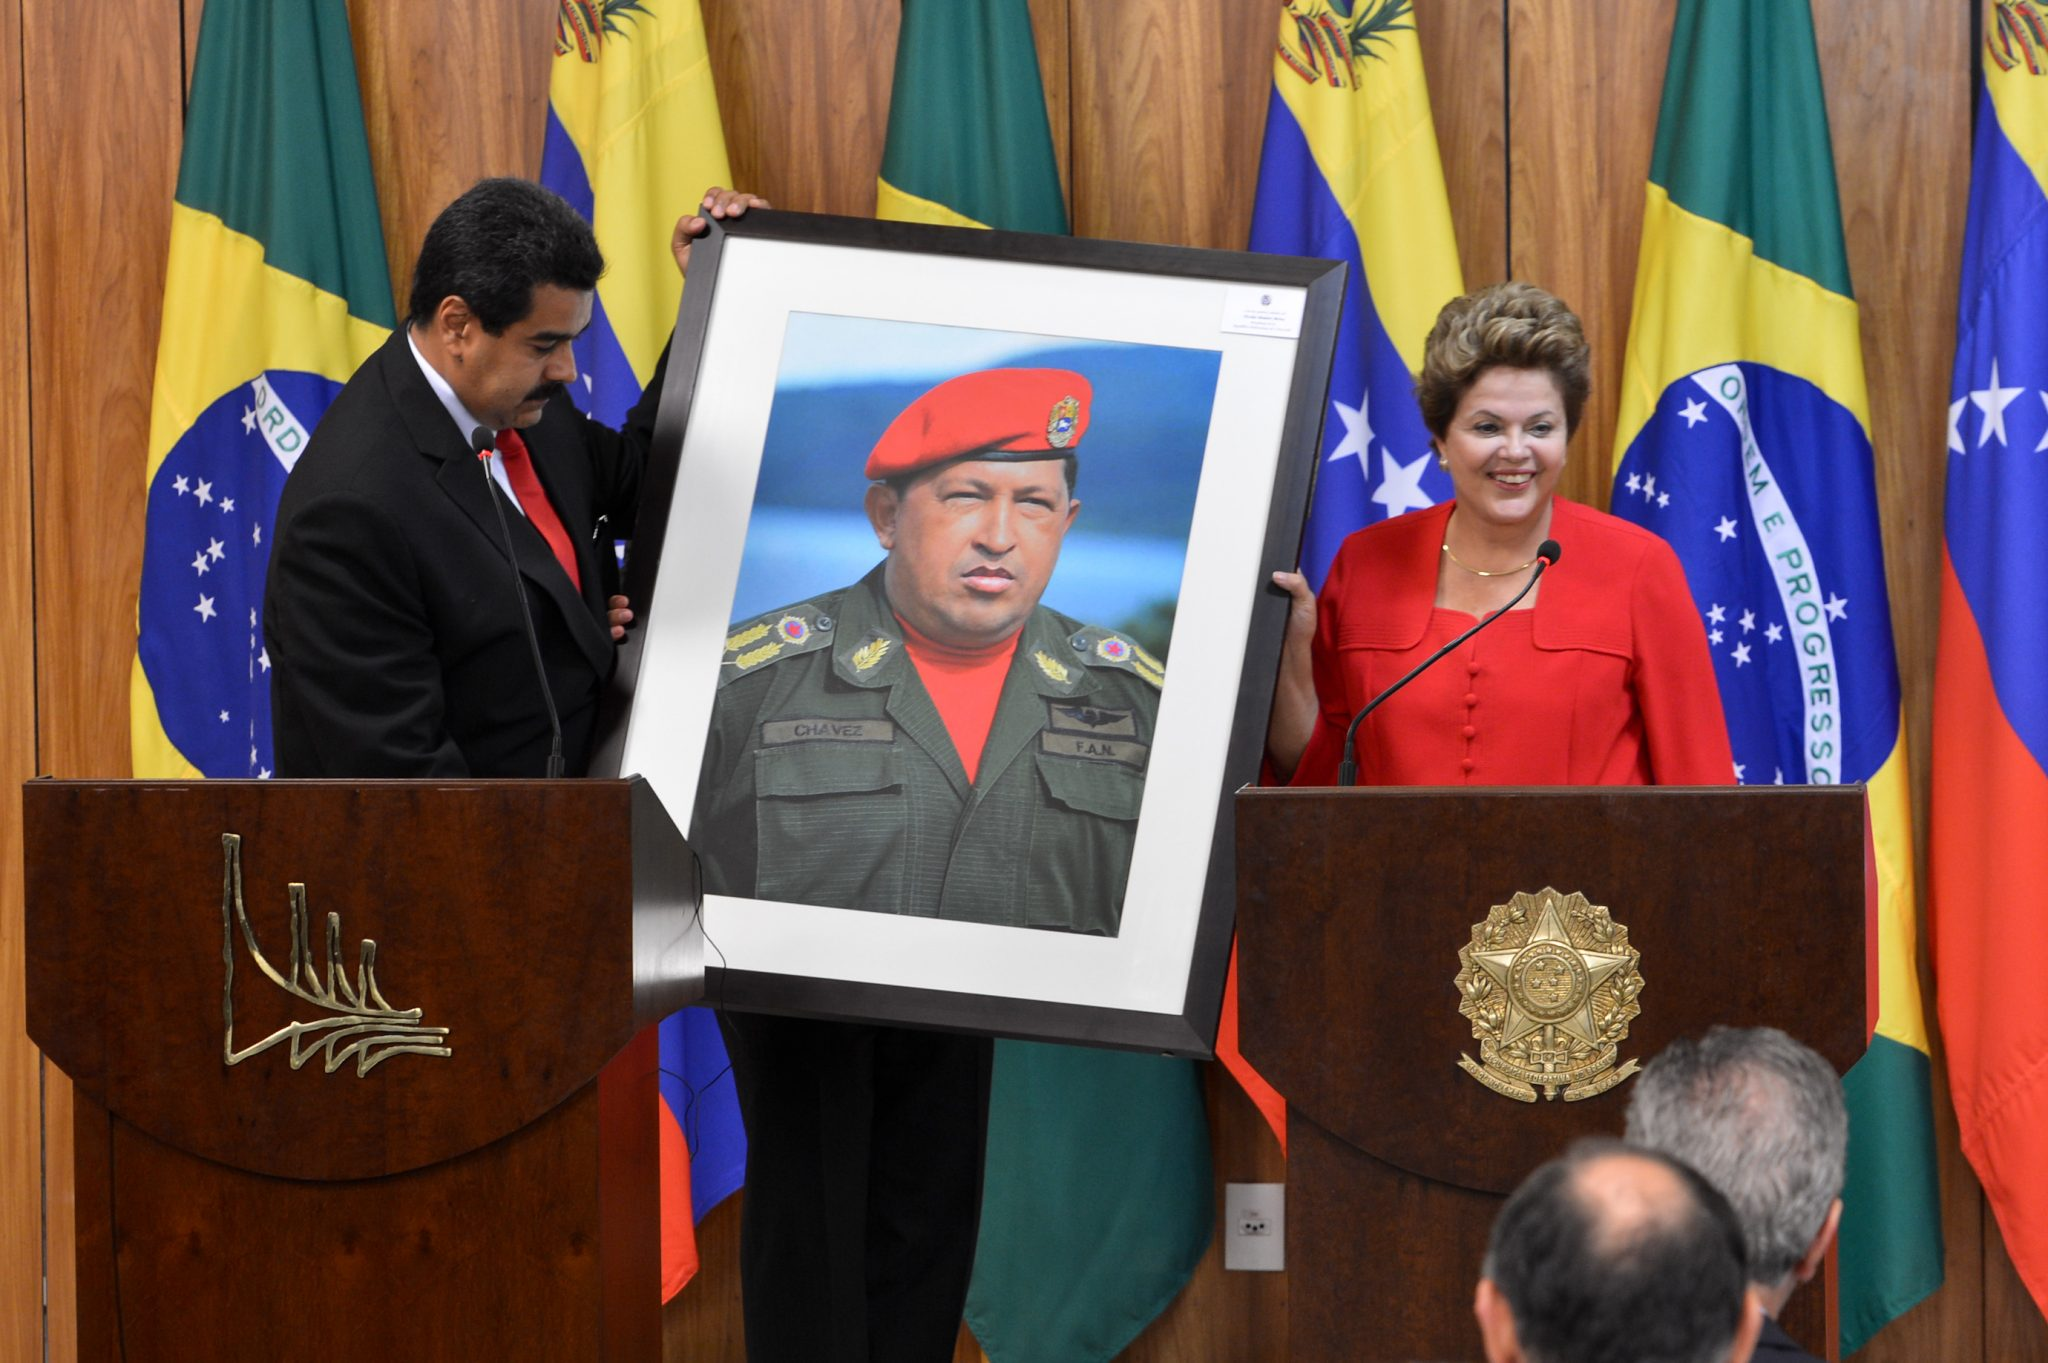 https://es.wikipedia.org/wiki/Archivo:Dilma_Rousseff_receiving_a_Hugo_Ch%C3%A1vez_picture_from_Nicol%C3%A1s_Maduro.jpg